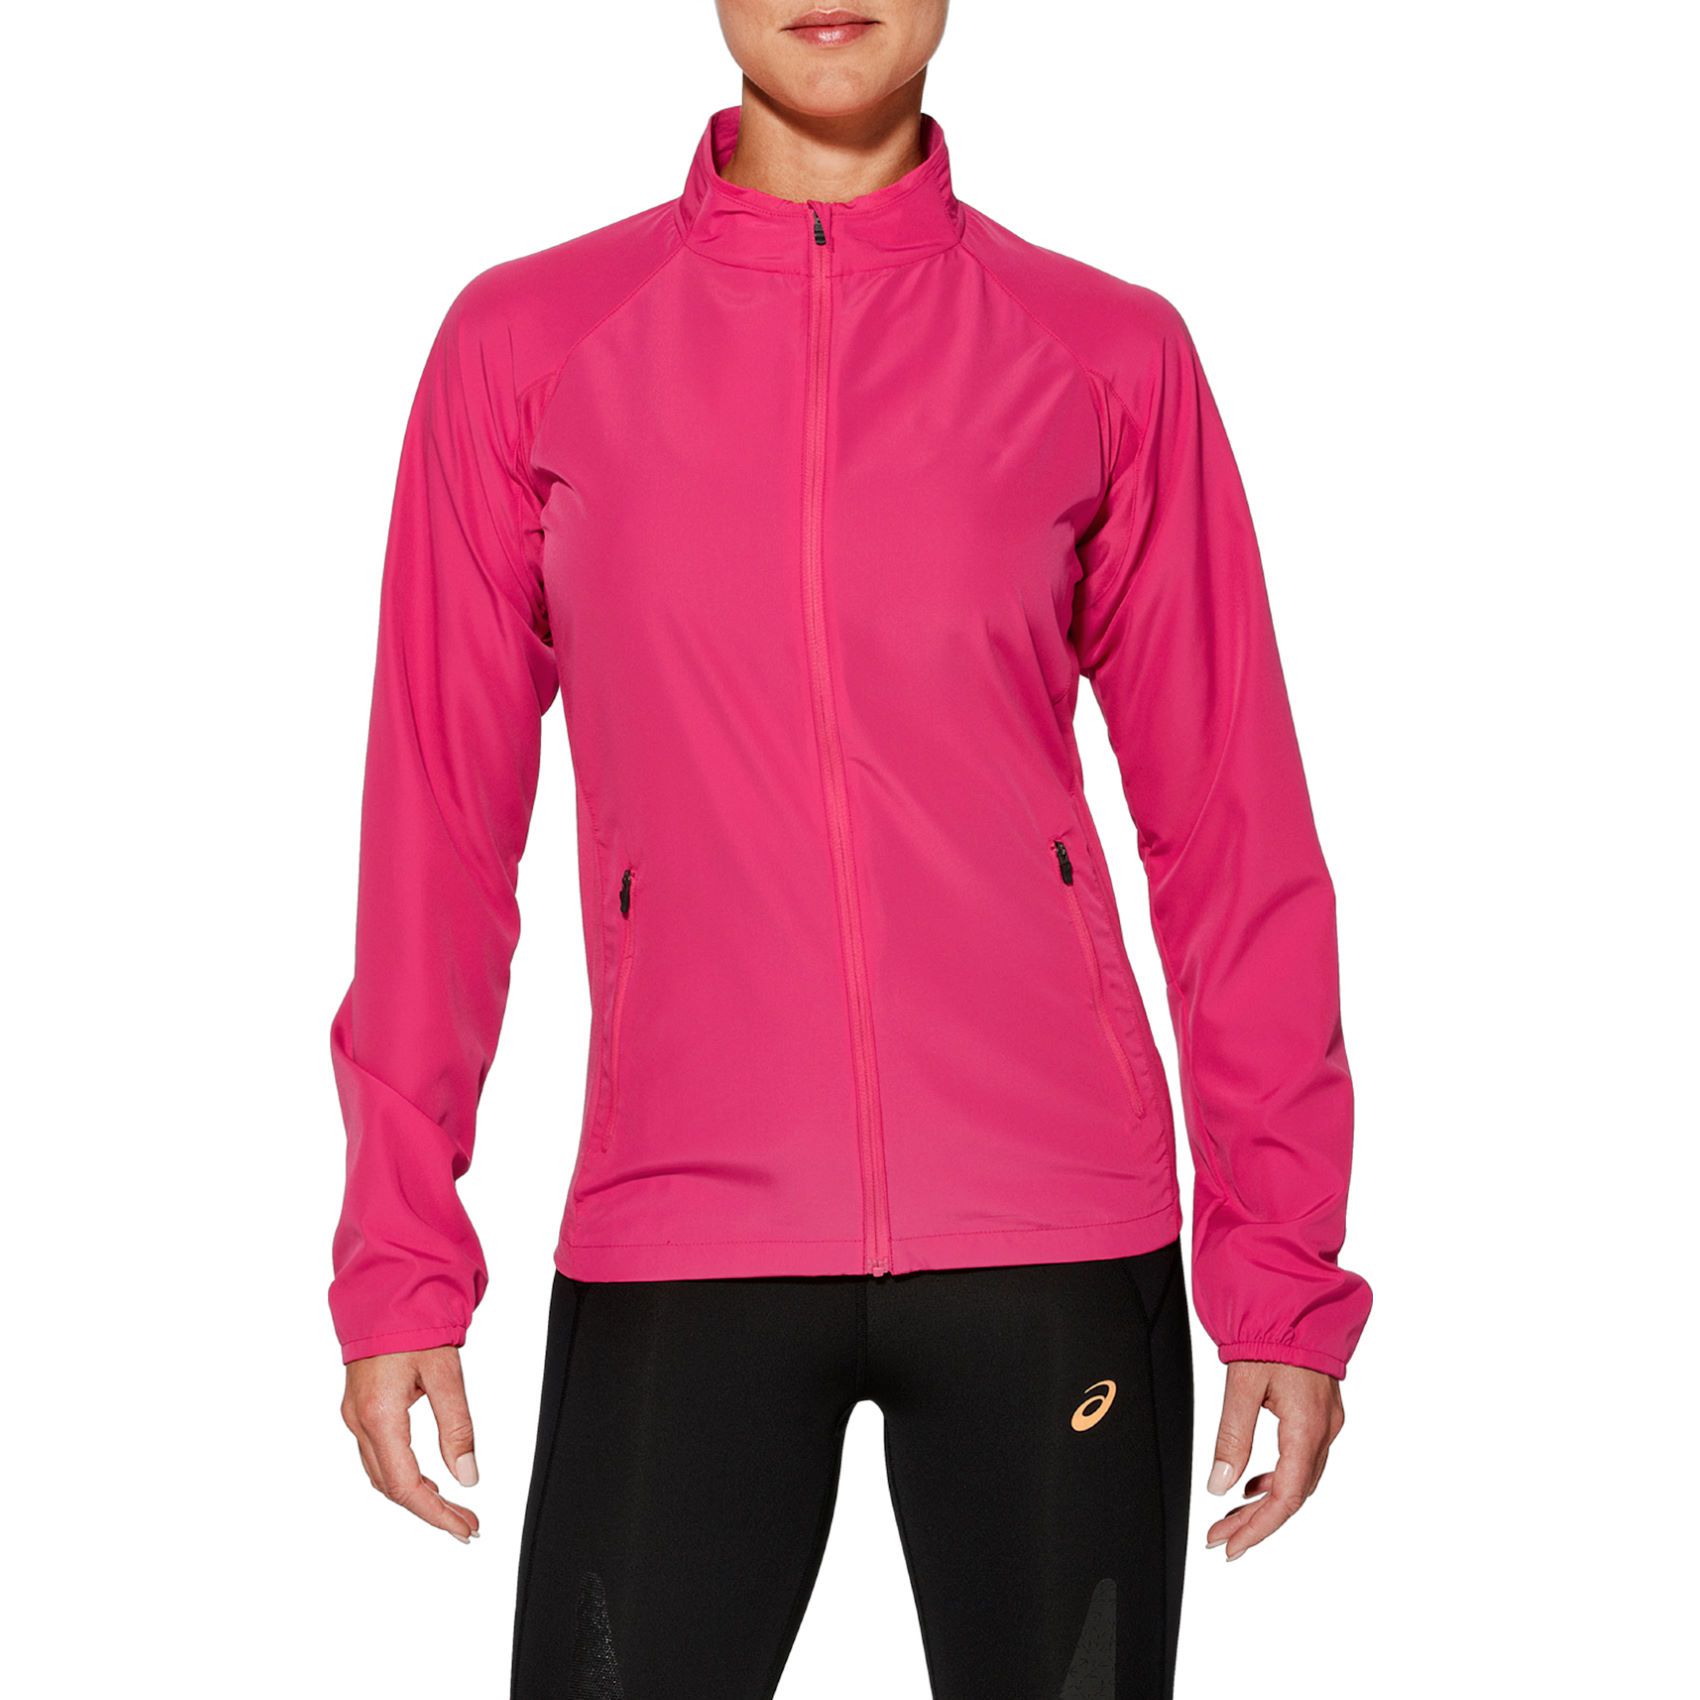 asics jacket for women